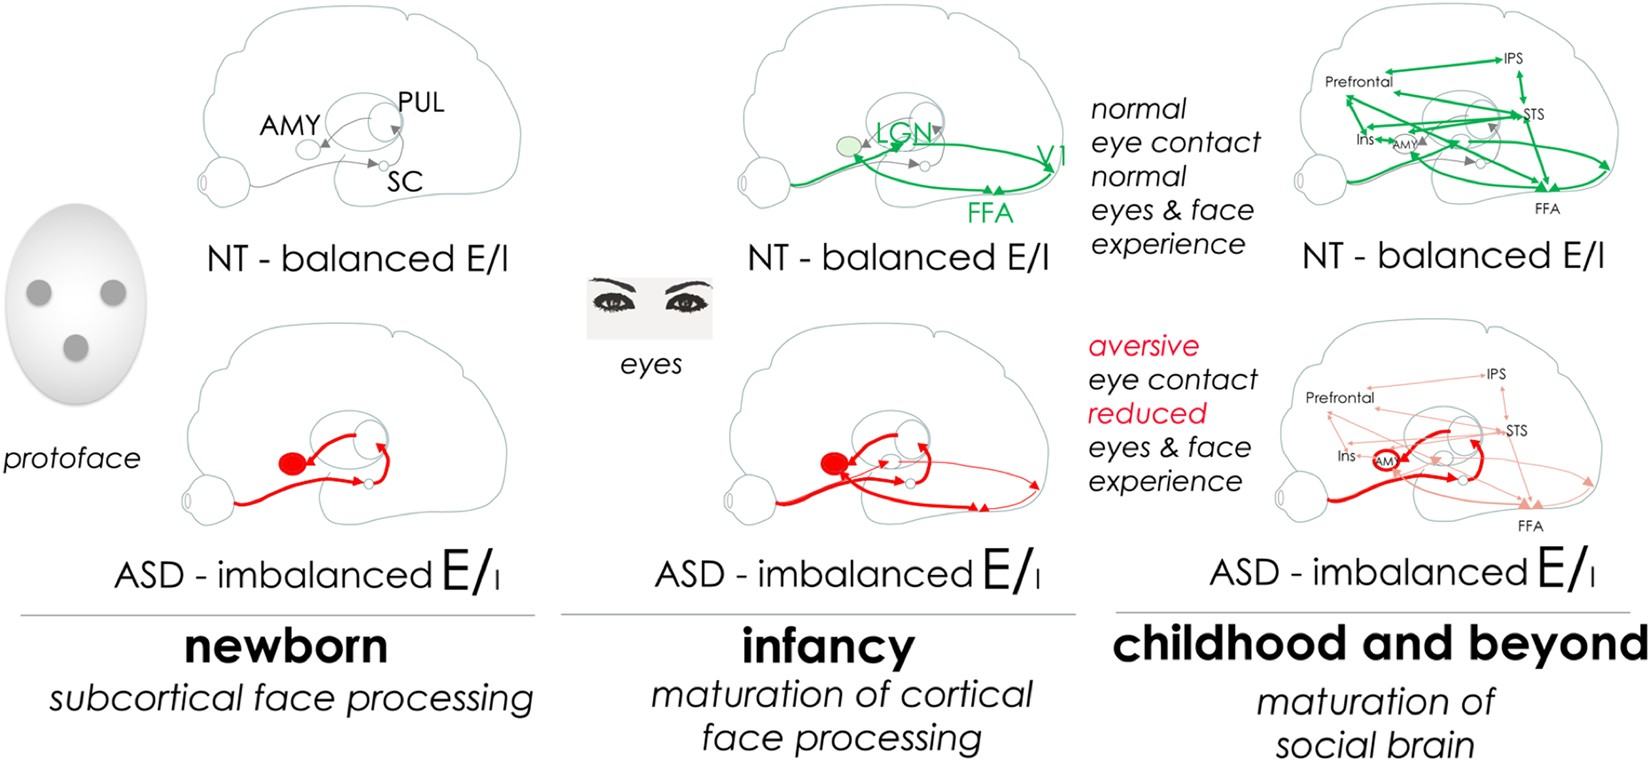 Where Autism Got Right Treatment In 2015 >> Bumetanide For Autism More Eye Contact Less Amygdala Activation